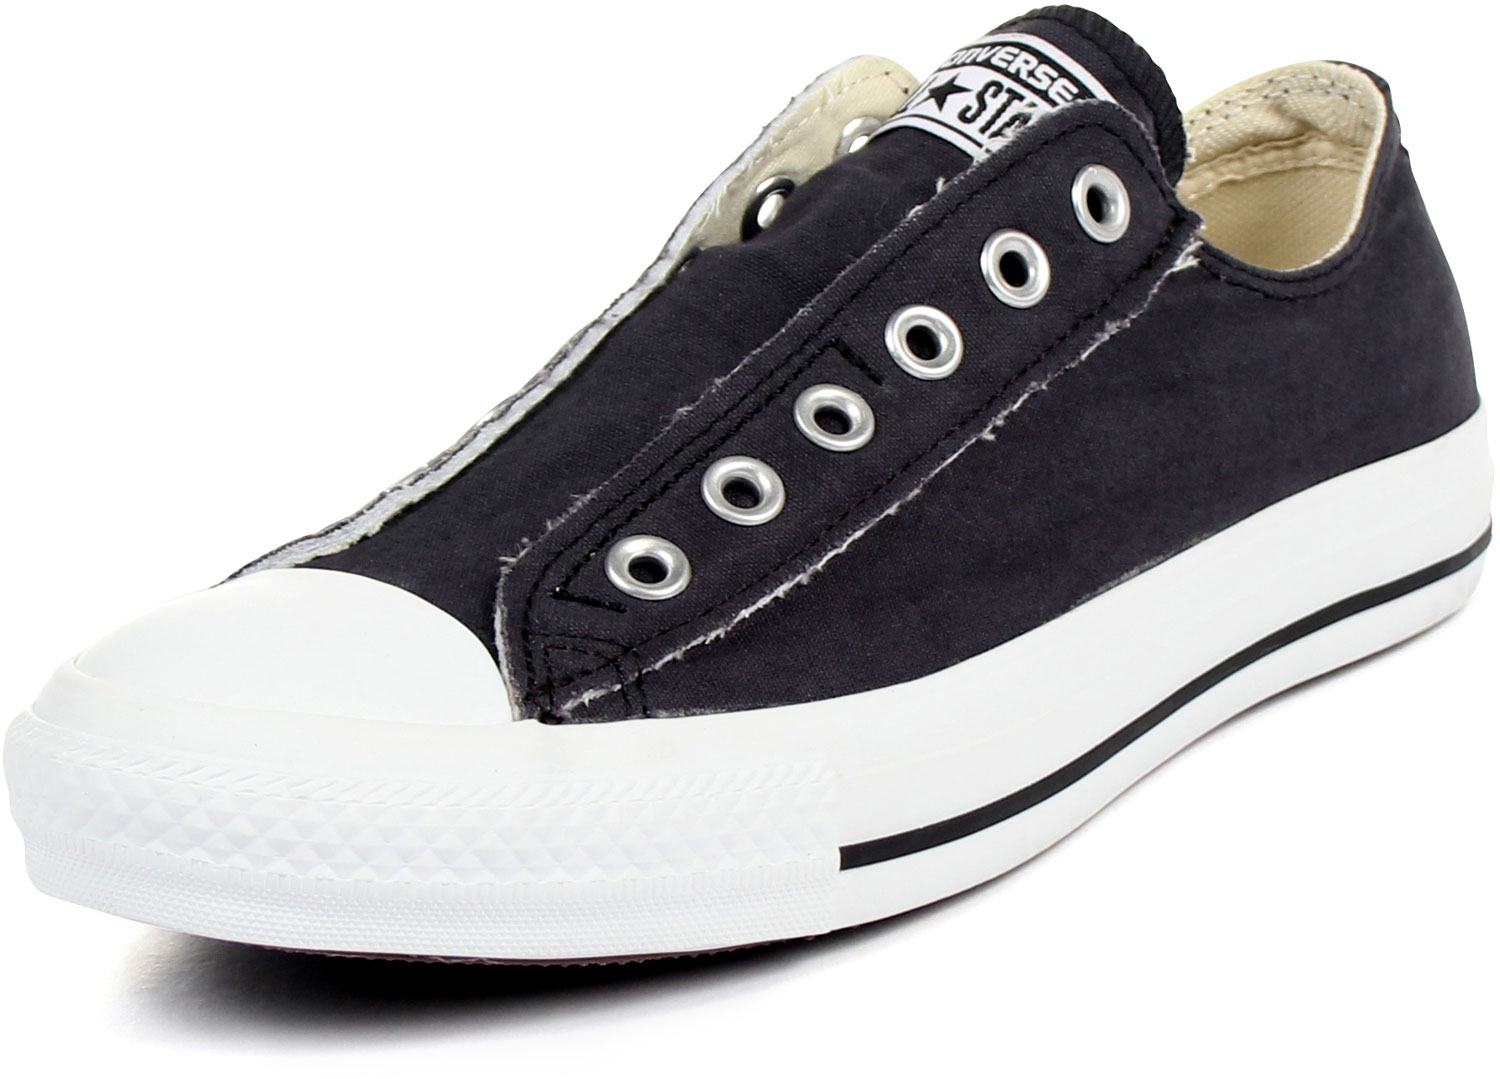 converse chuck taylor slip on shoes in black it366. Black Bedroom Furniture Sets. Home Design Ideas